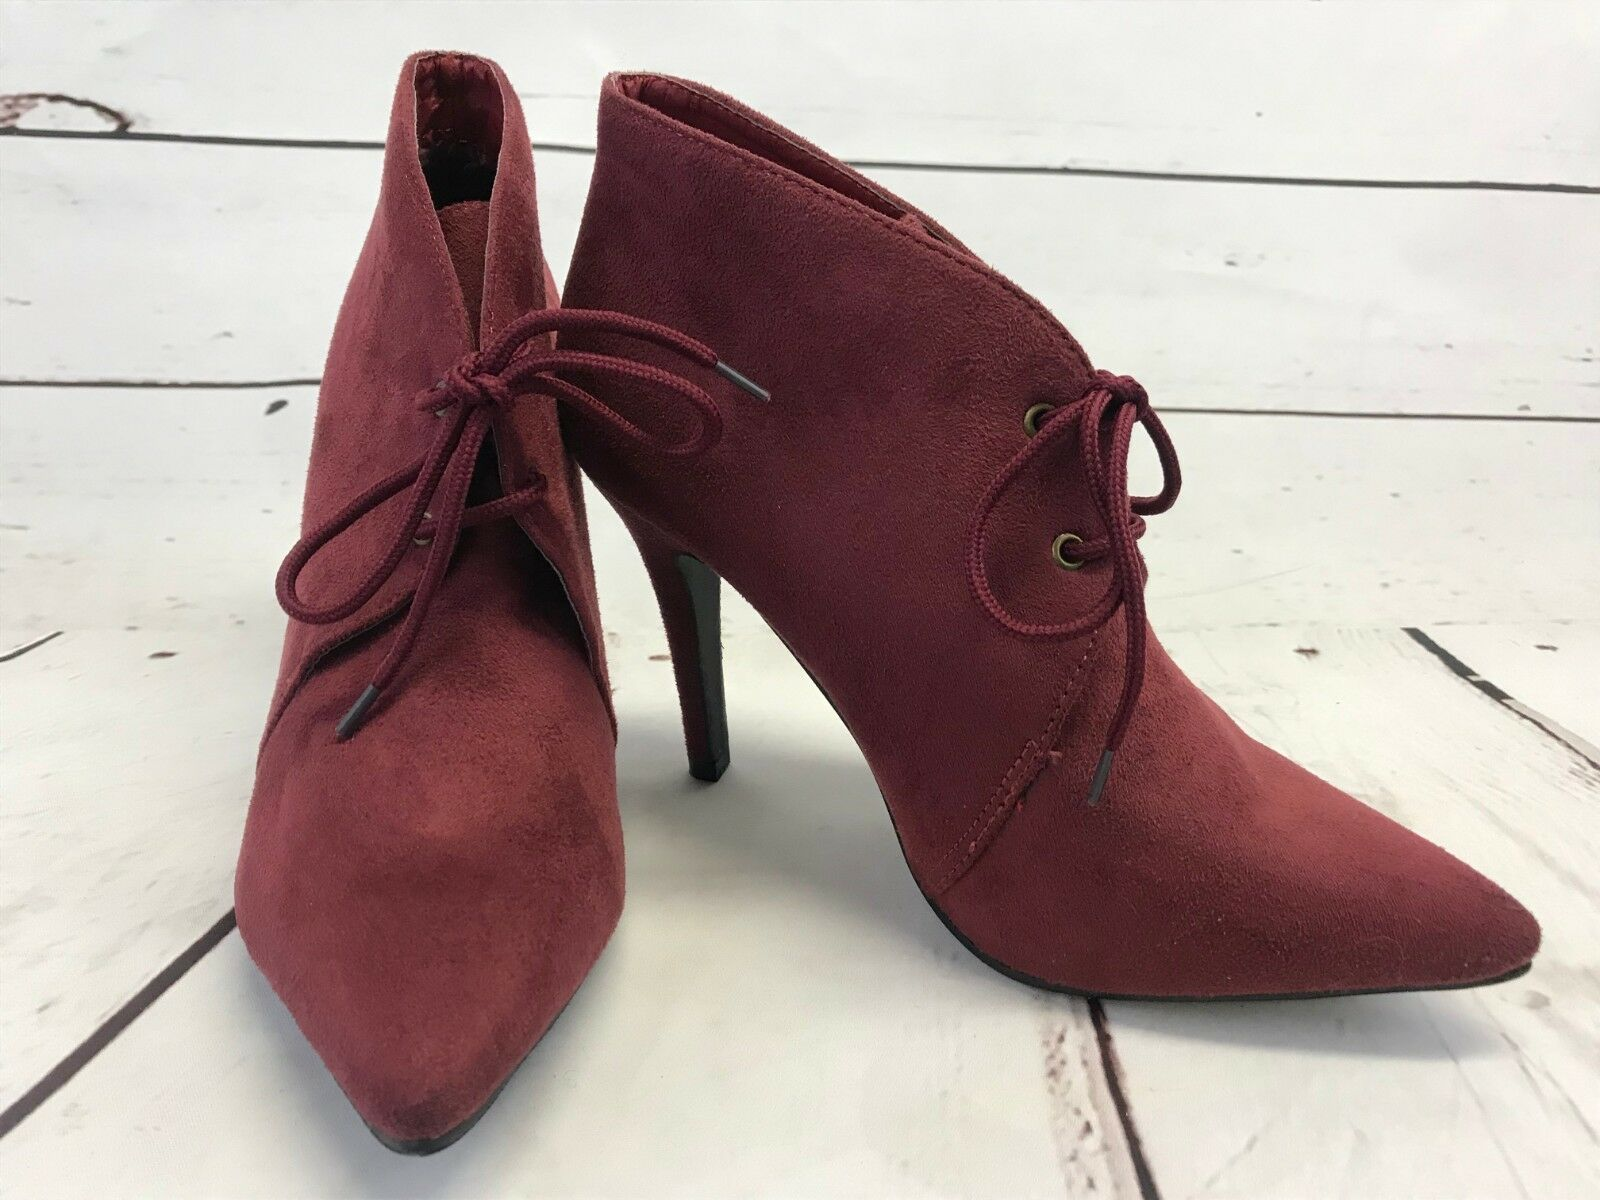 1a56a18cca22a Ollio Womens Heel Ankle shoes Lace Faux Suede Burgundy Boots Sz 7 1 ...